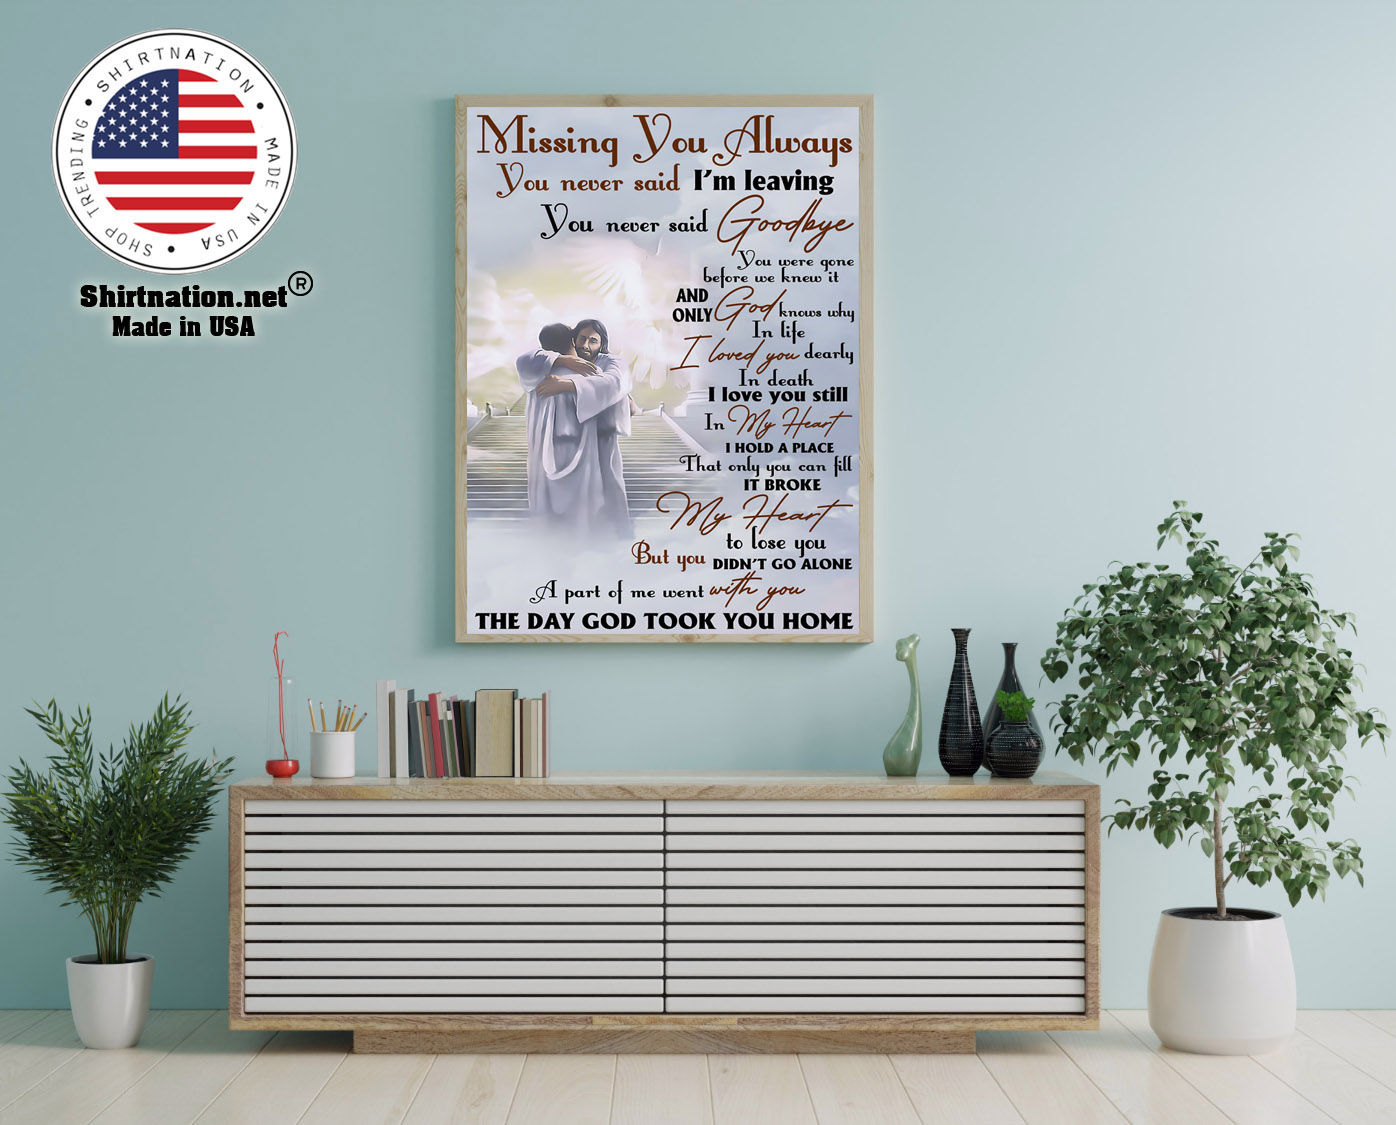 Missing you always you never said im leaving poster 12 1